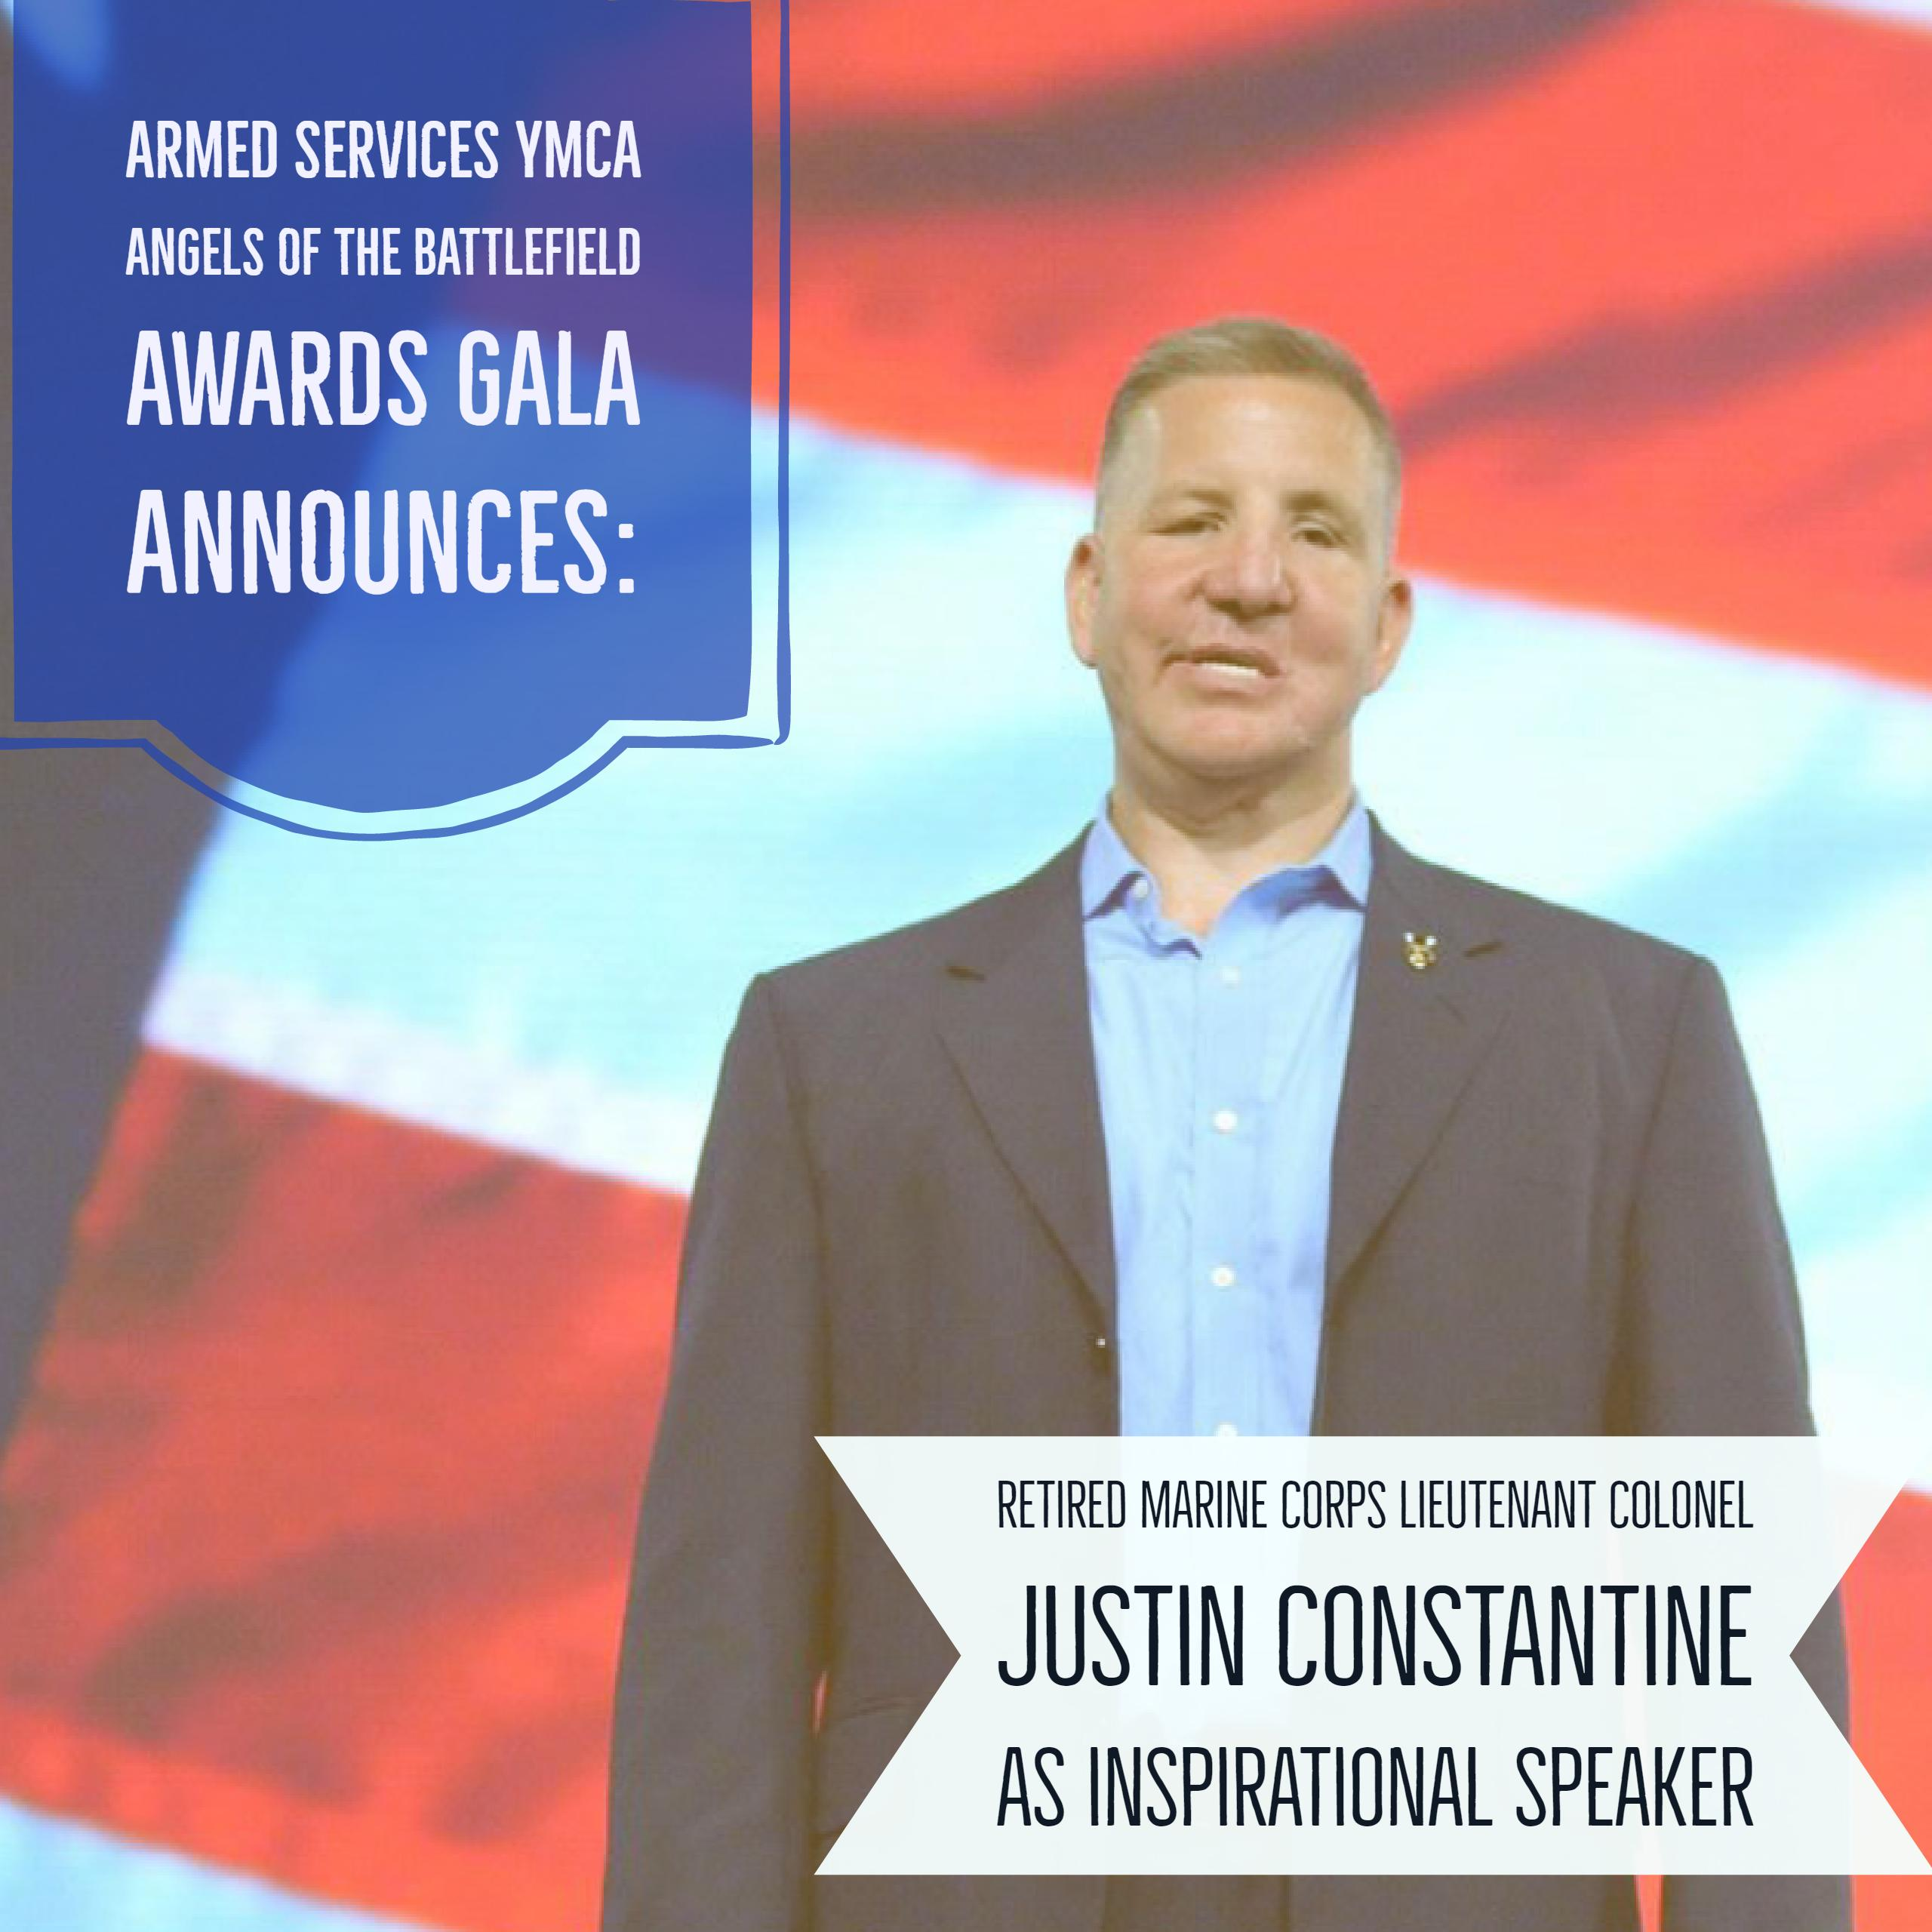 Justin Constantine Announced as Angels of the Battlefield Awards Gala Inspirational Speaker